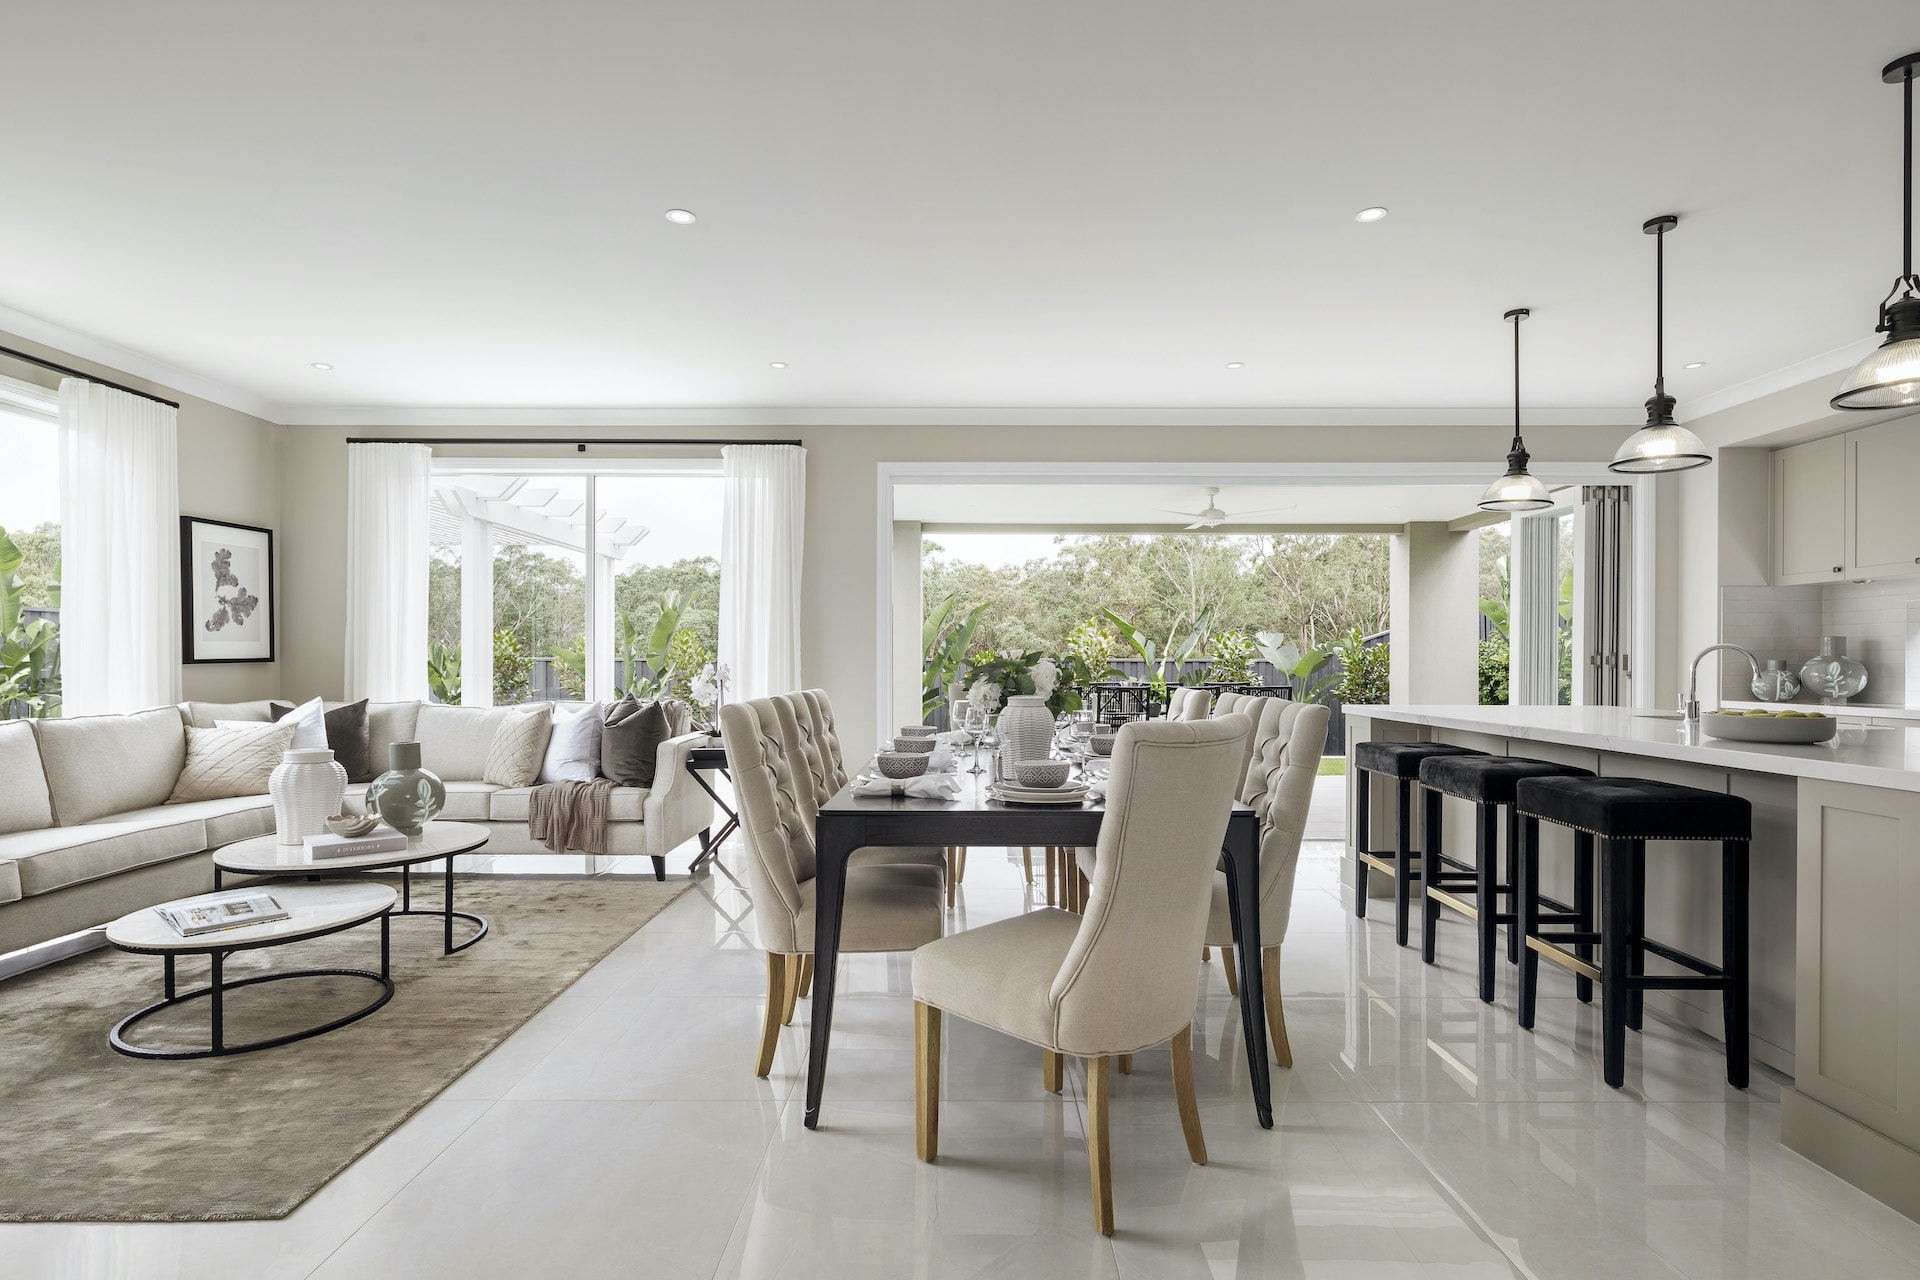 modern provincial interior design open plan living dining kitchen white and grey